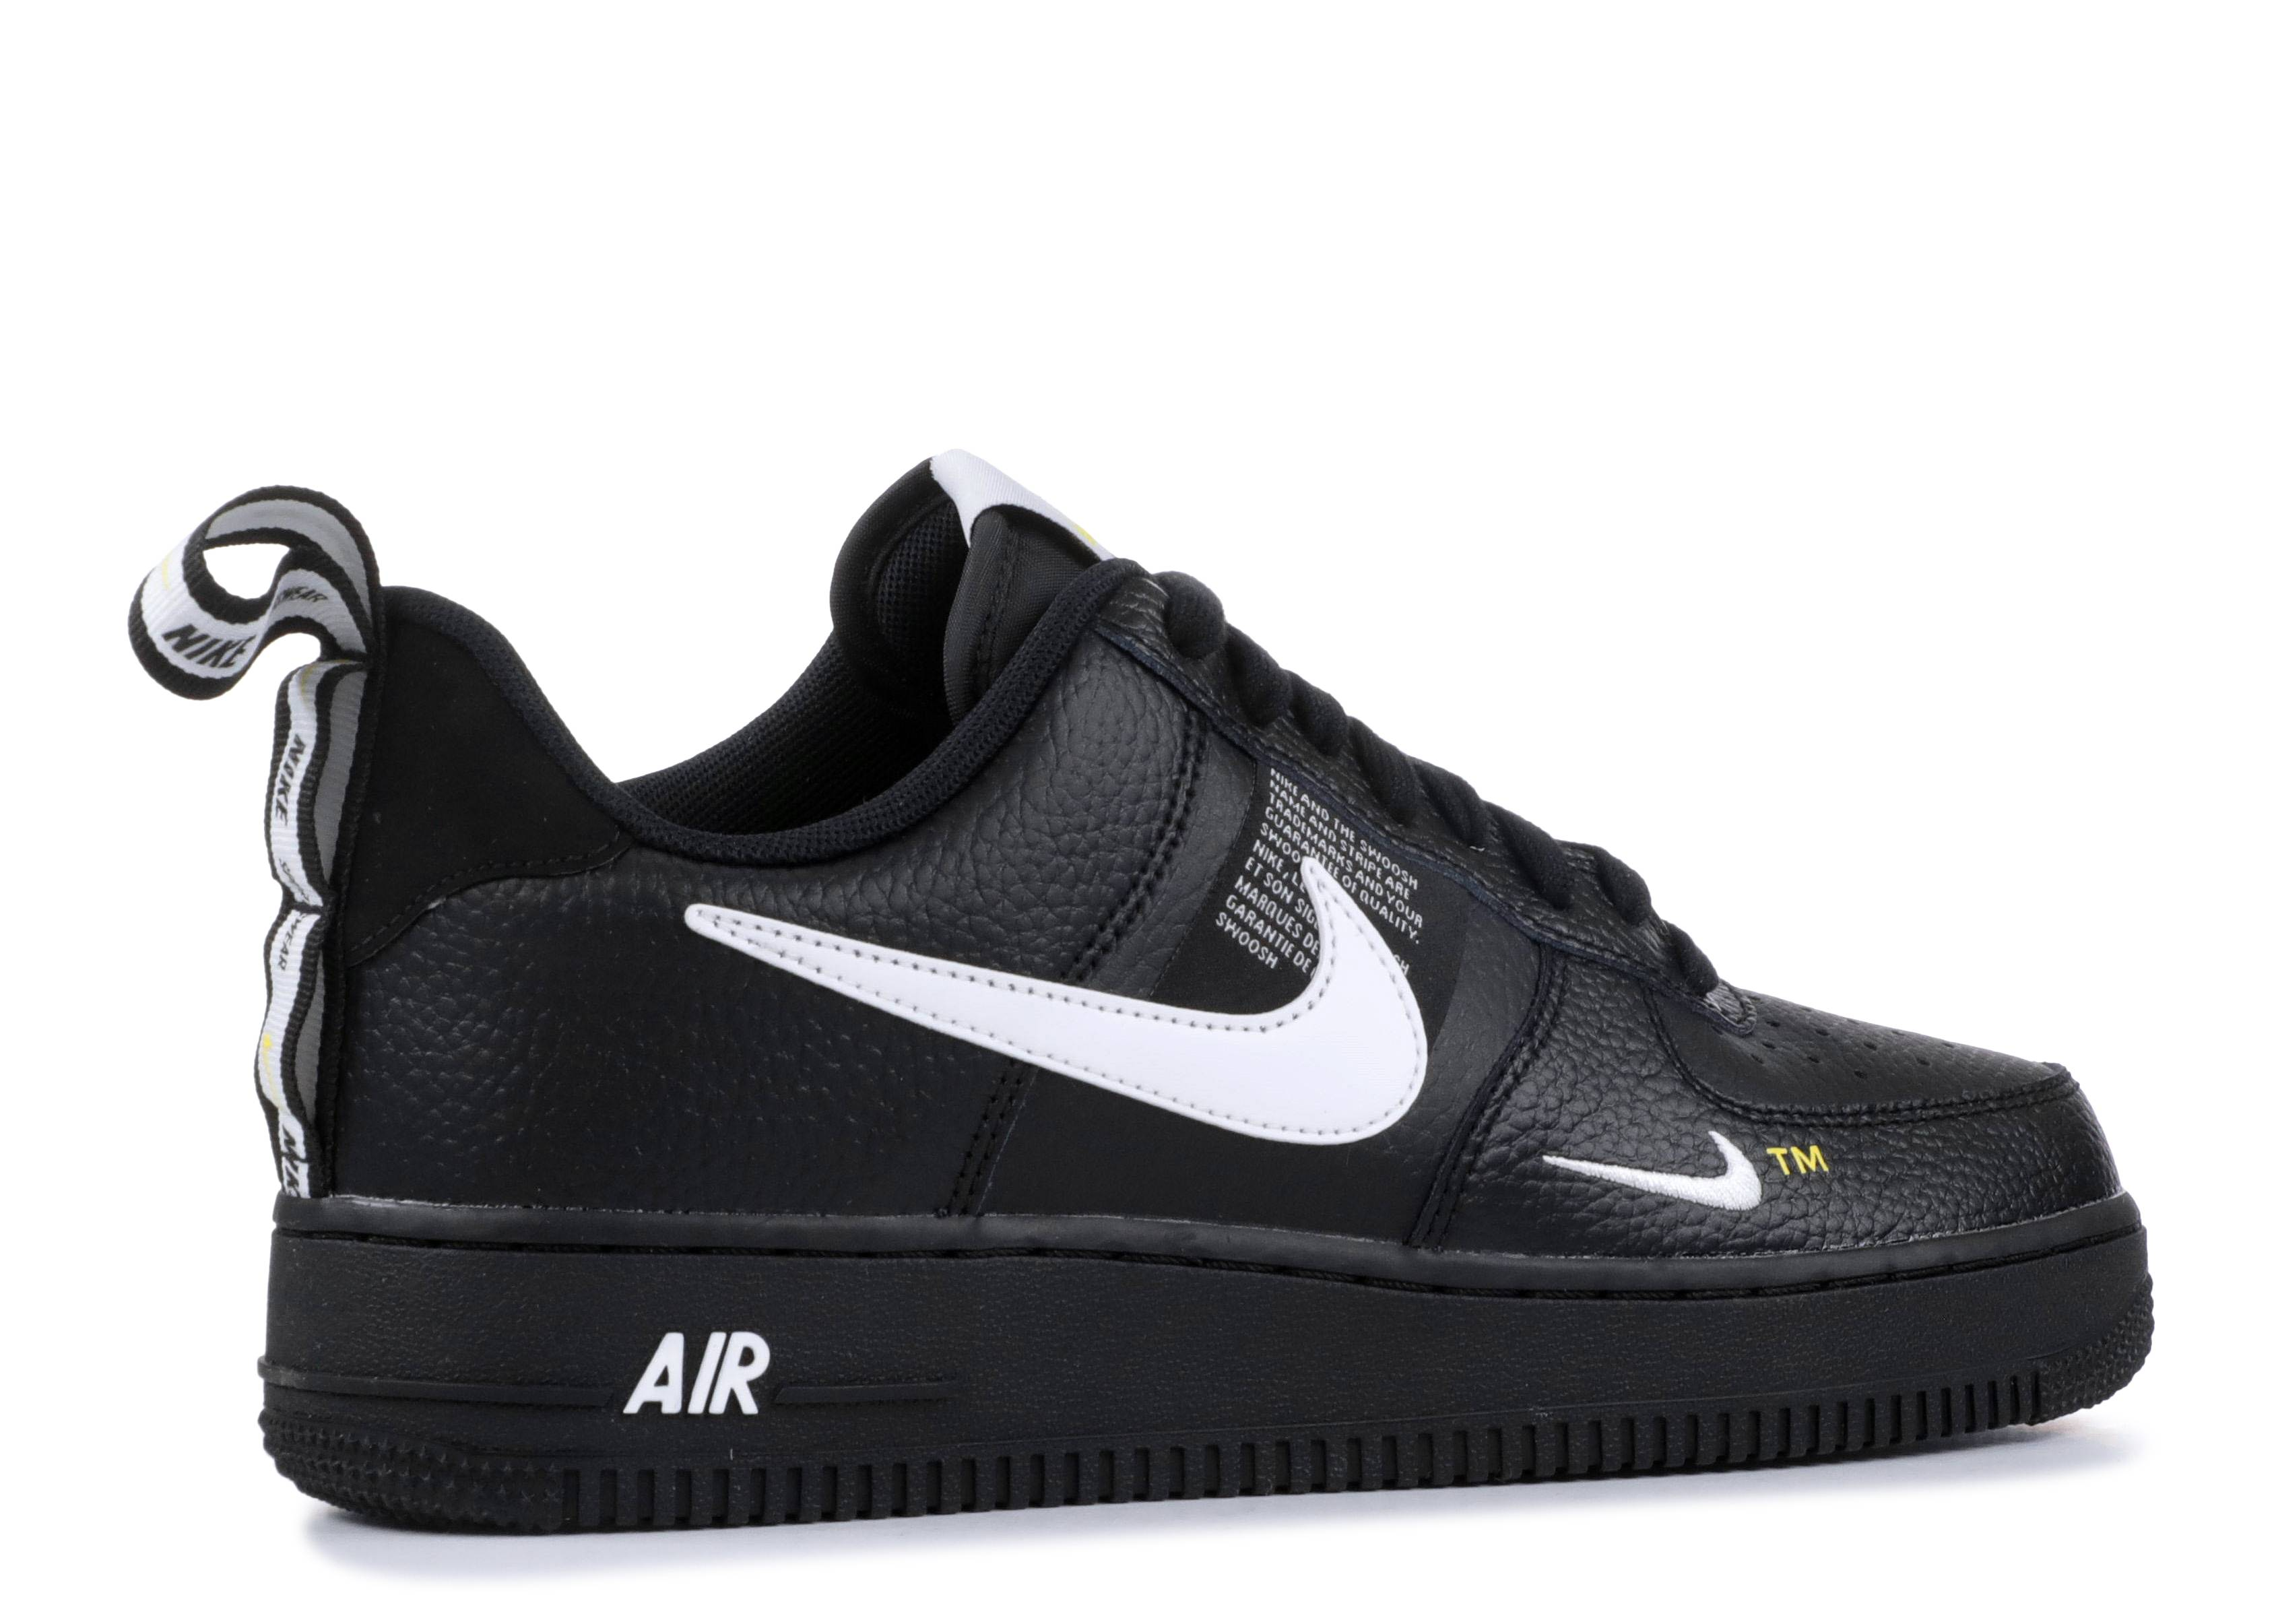 NIKE AIR FORCE 1 07 LV8 1 Shoes